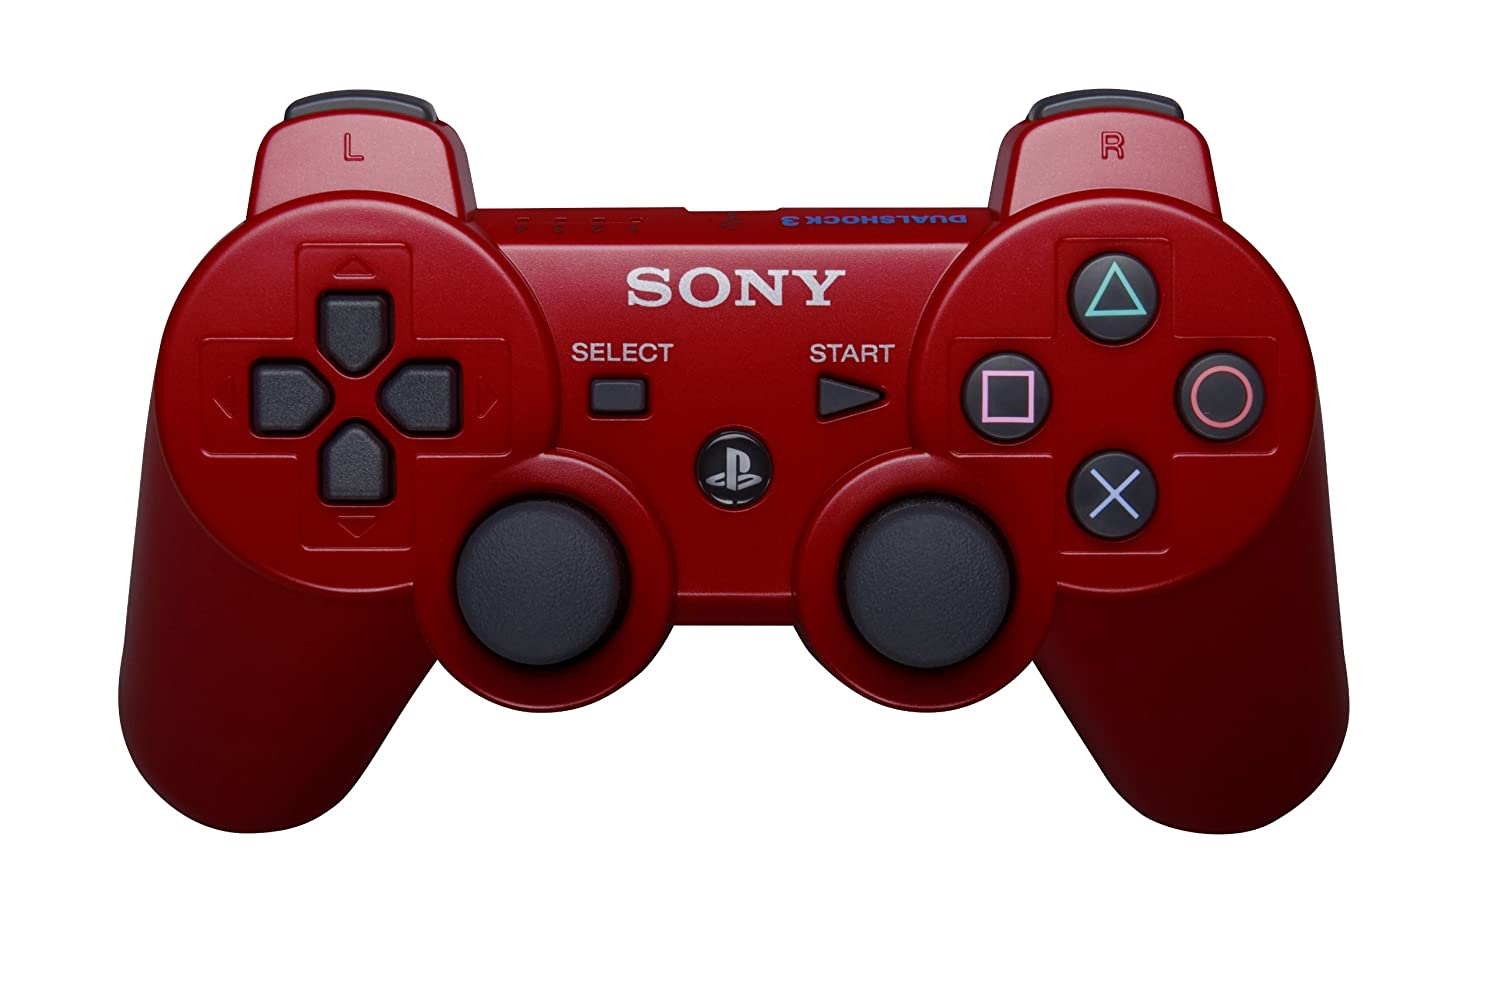 dualshock 3 wireless controller black playstation 3 standard edition playstation 3 computer and video games amazonca - Manette Ps3 Color